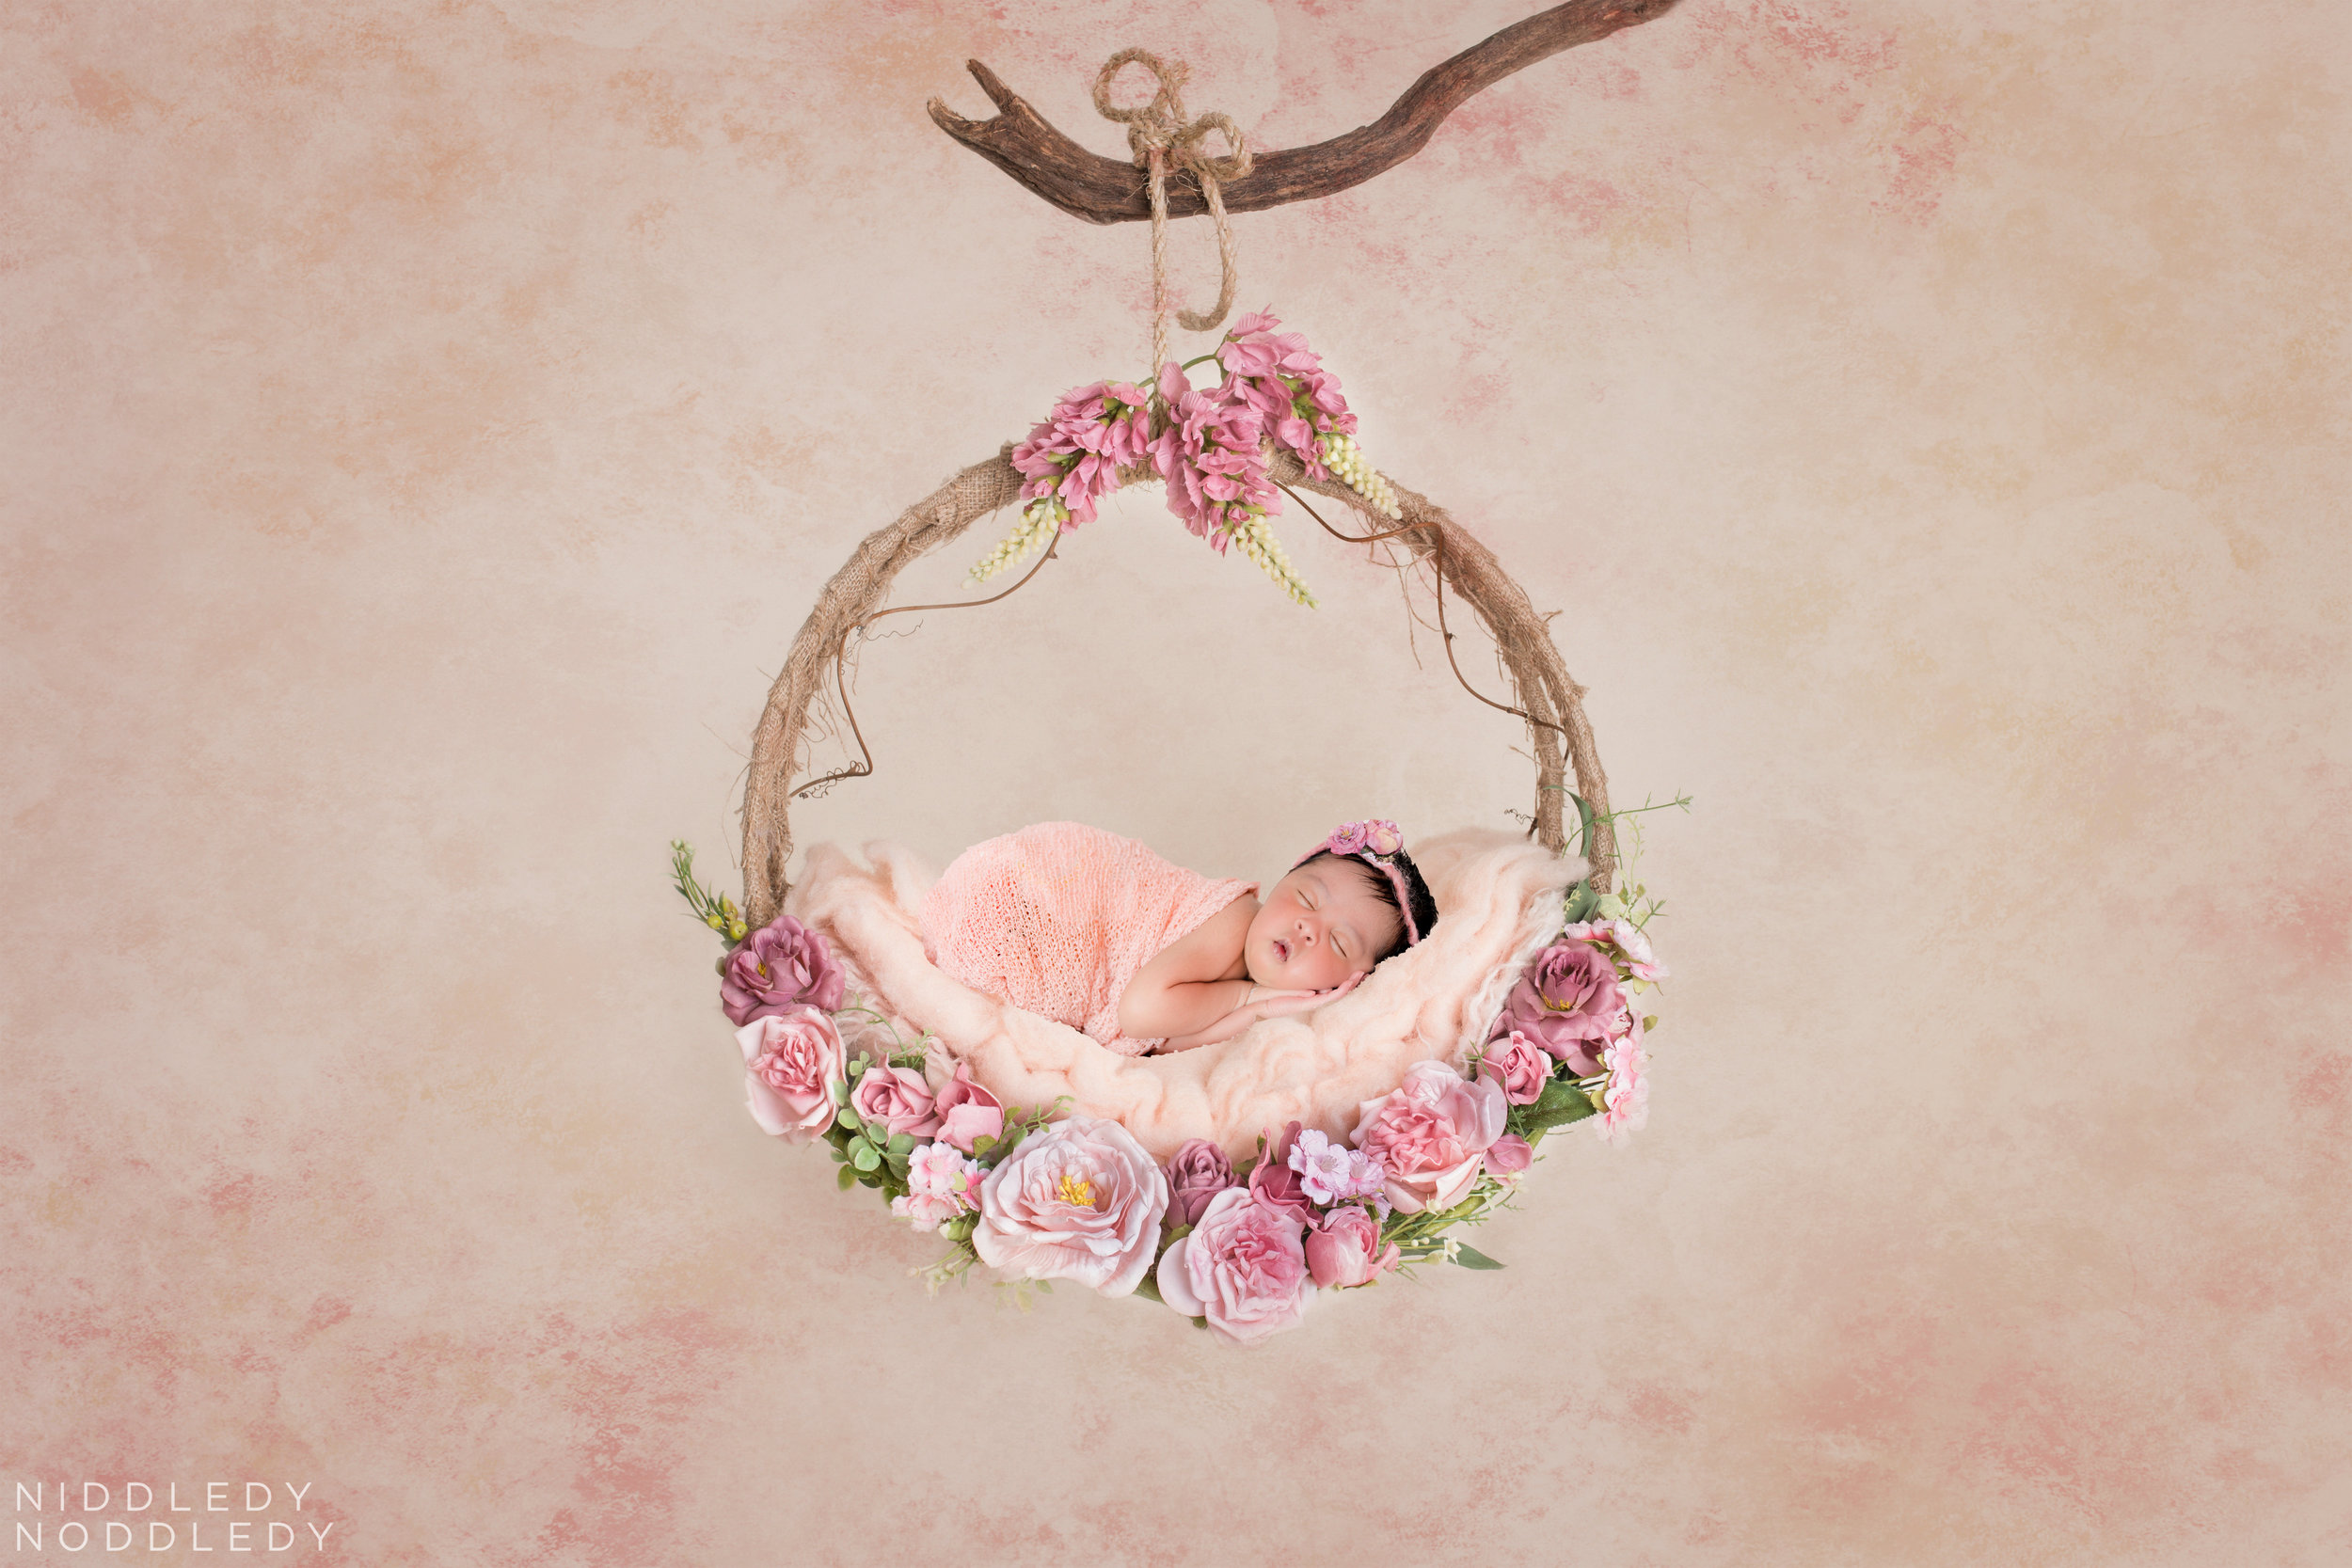 Samaira Newborn Photoshoot ❤ NiddledyNoddledy.com ~ Bumps to Babies Photography, Kolkata - 19.jpg